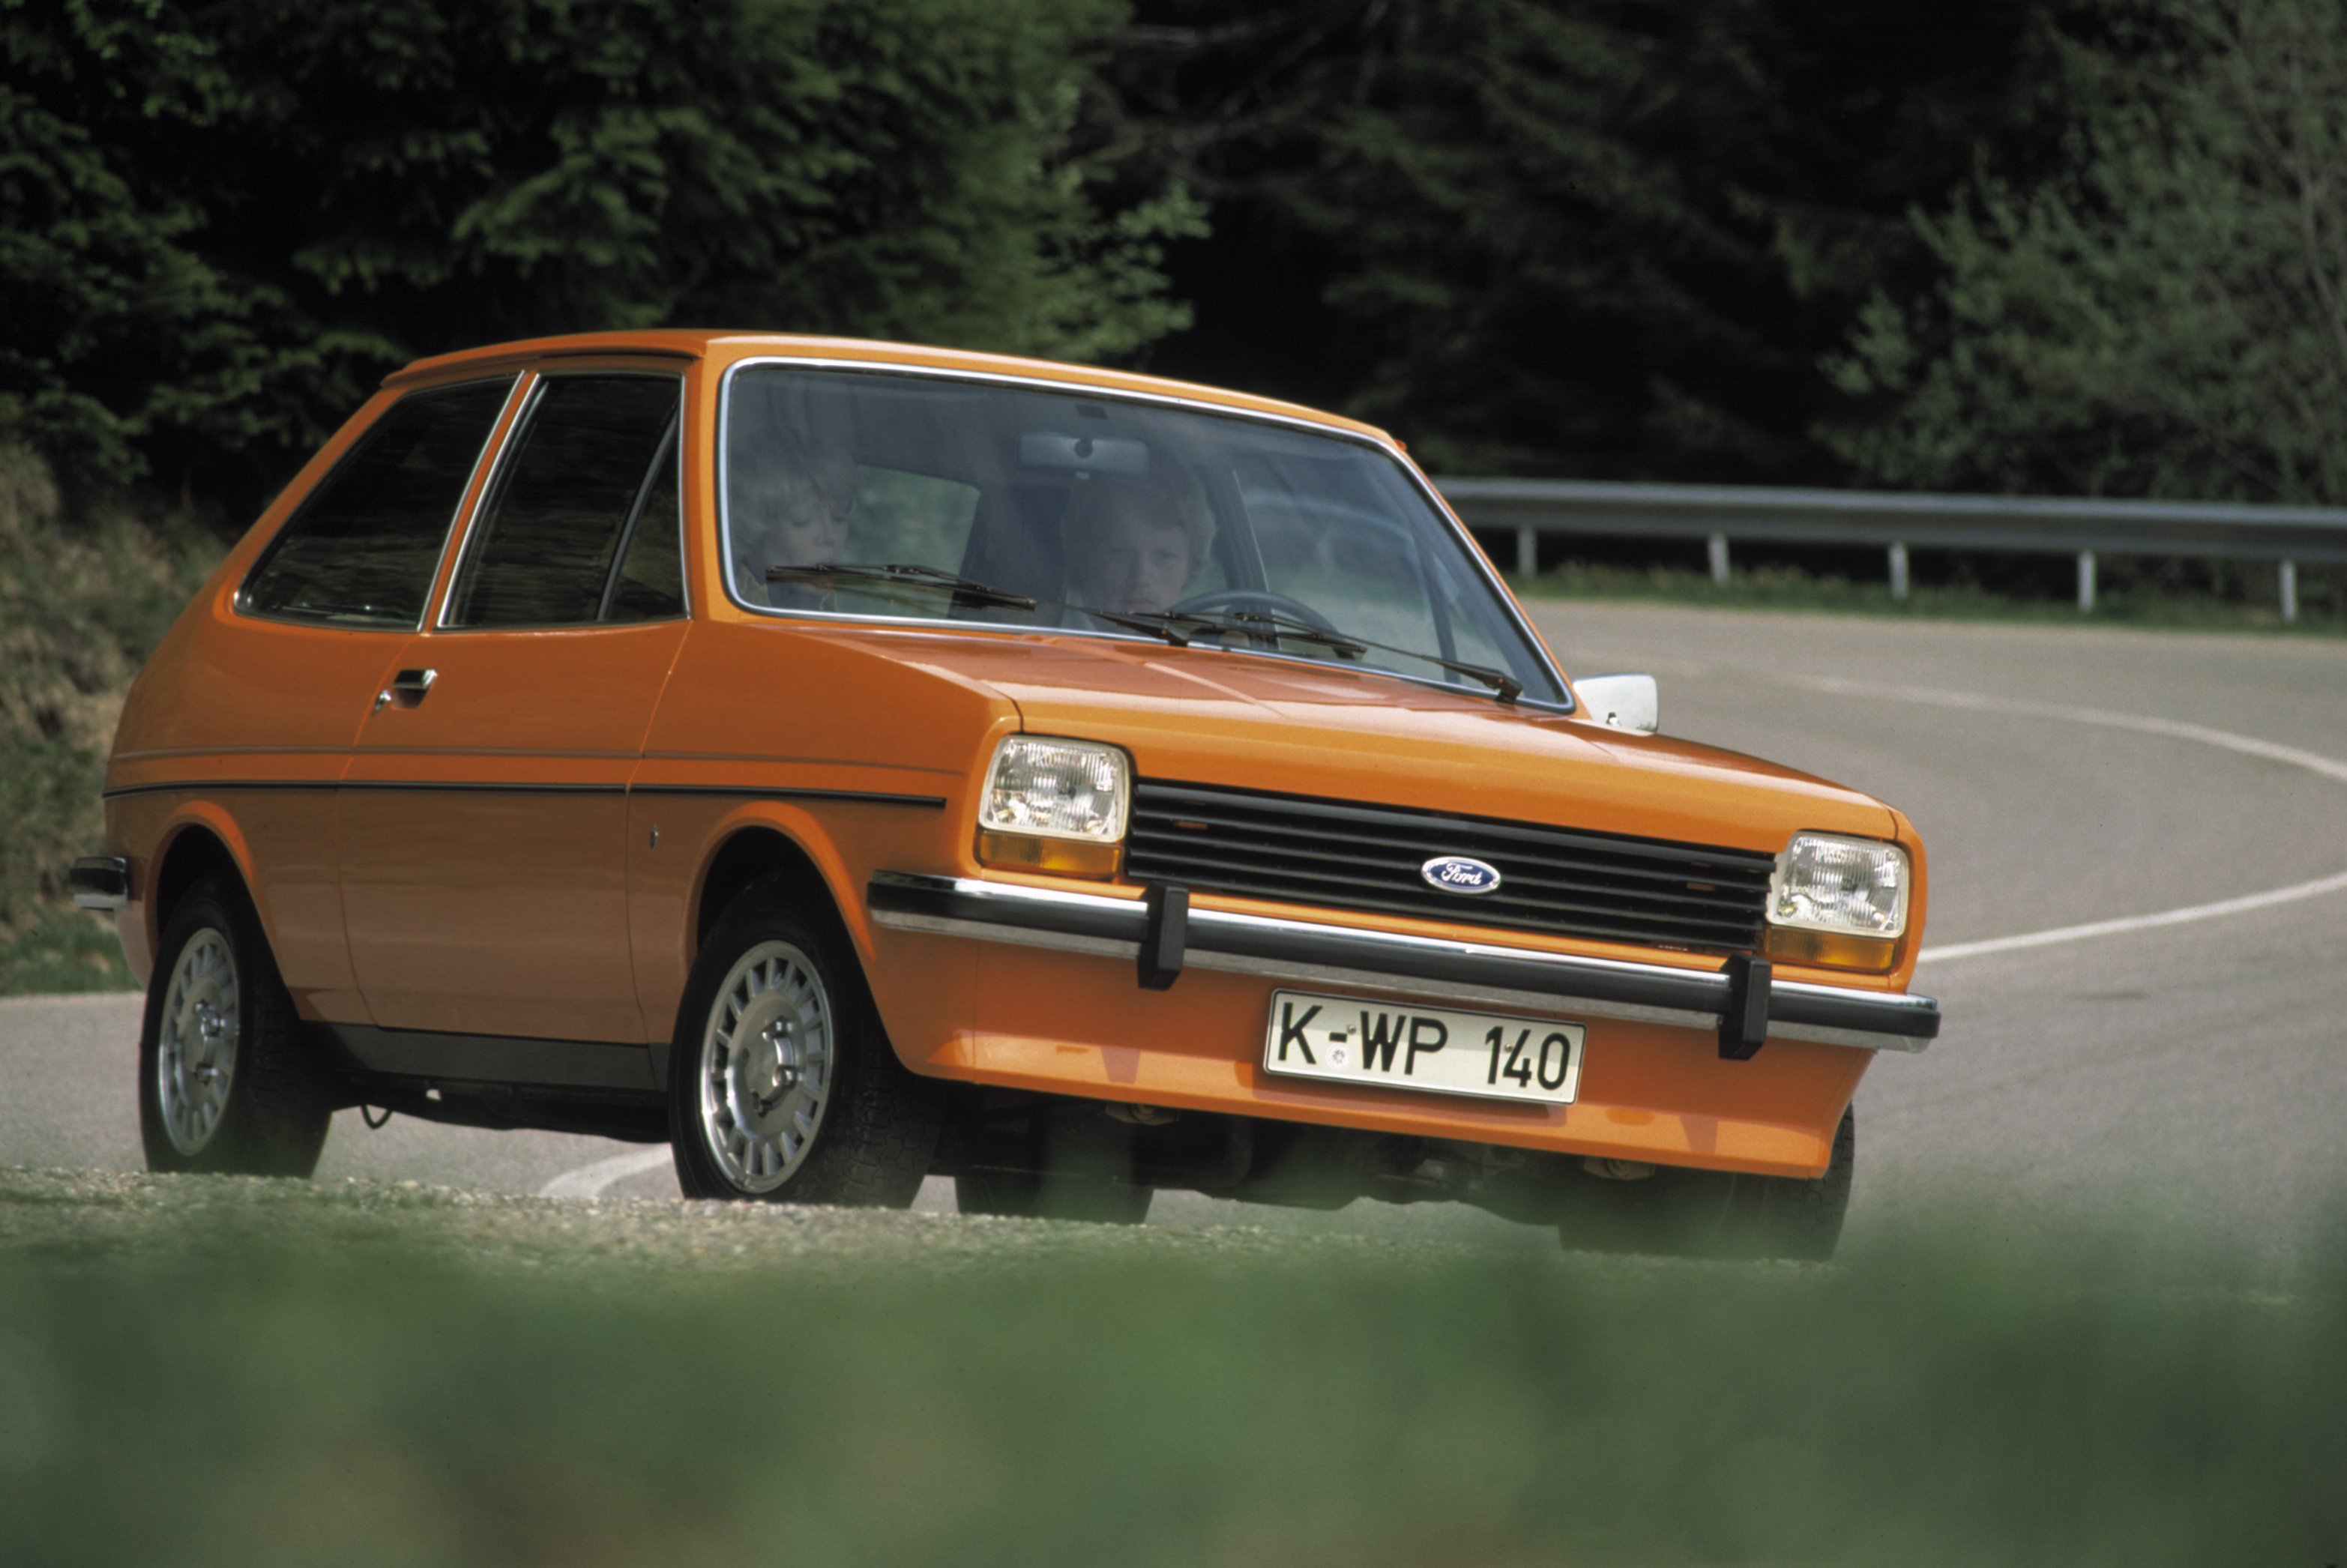 search for Ireland's oldest Ford Fiesta